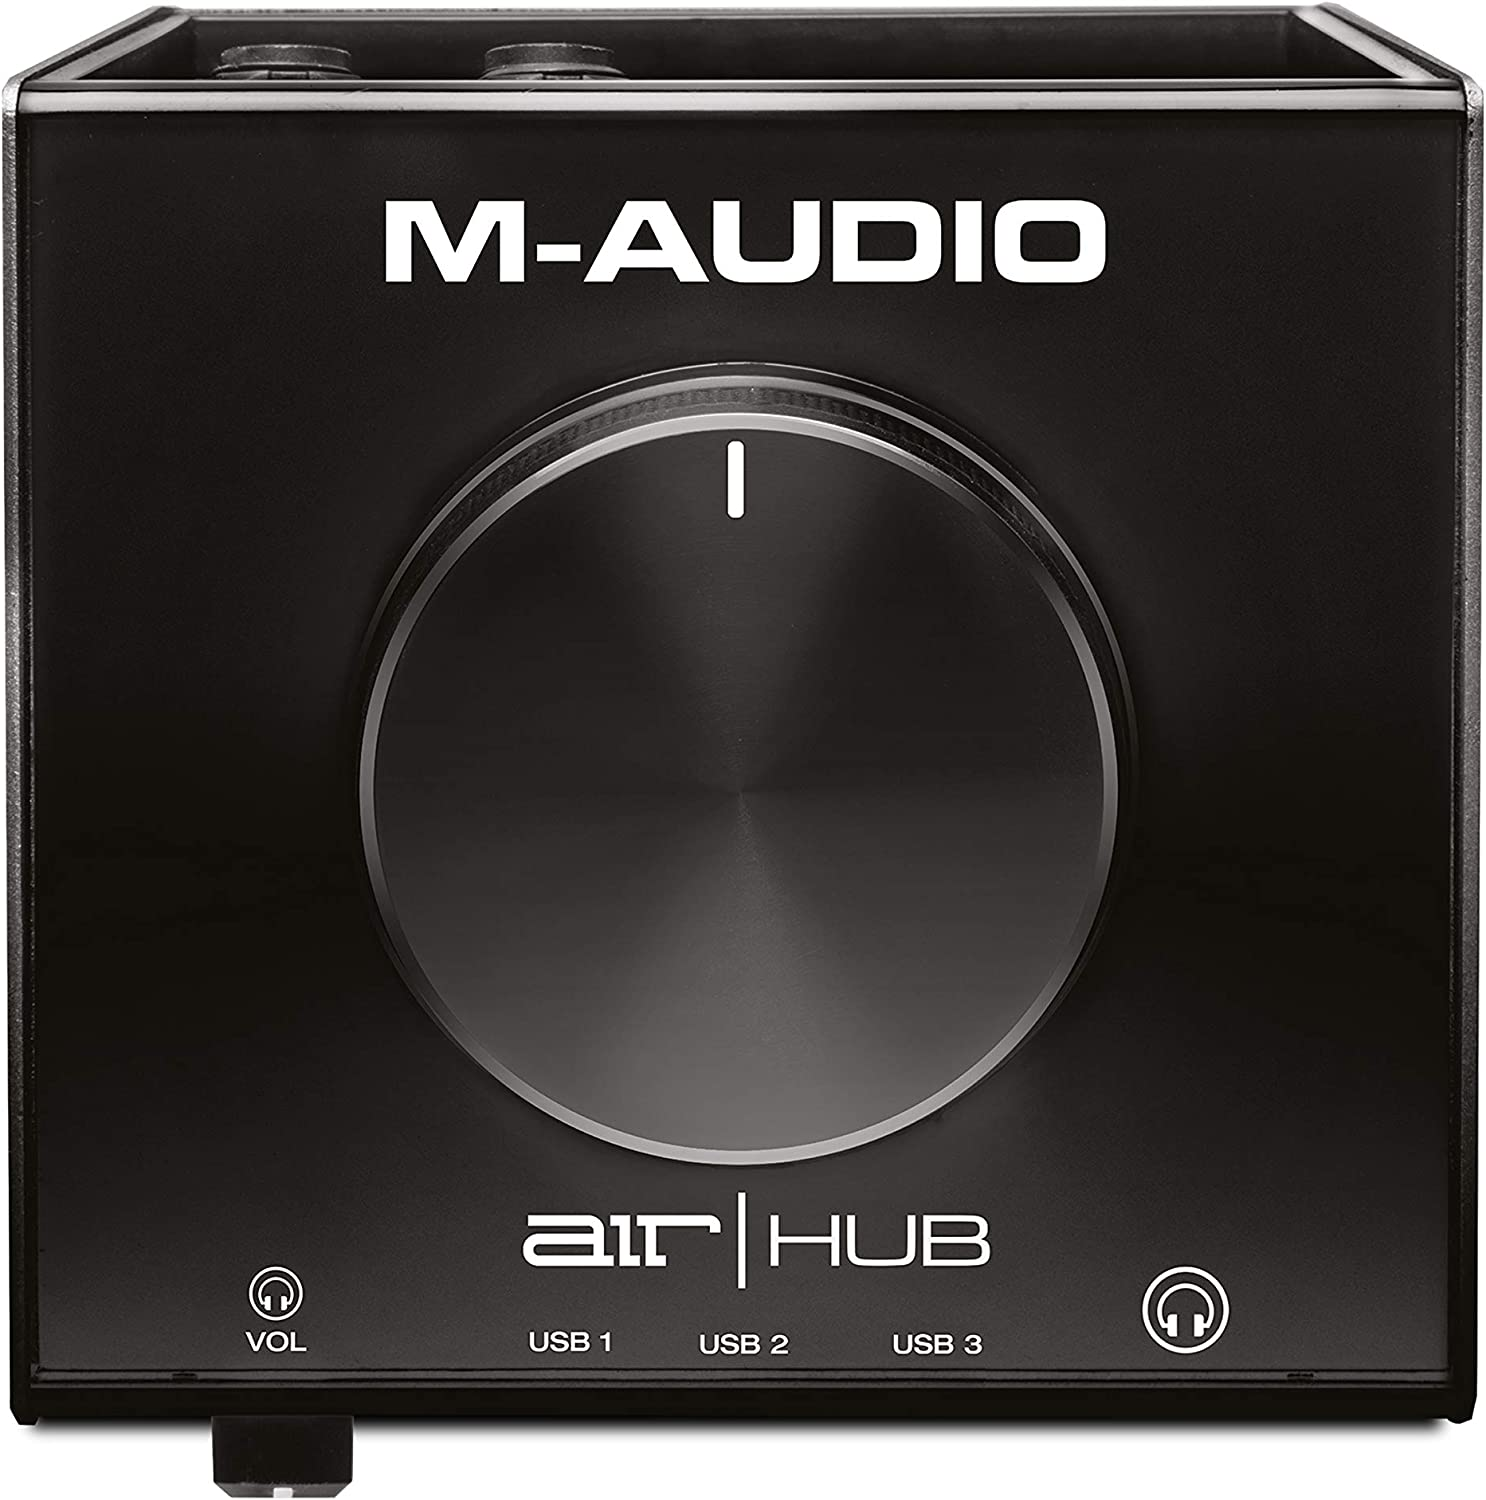 M-Audio AIR HUB - USB Audio Interface with 3-Port Hub and Recording Software from Pro-Tools & Ableton Live, Plus Studio-Grade FX & Instruments